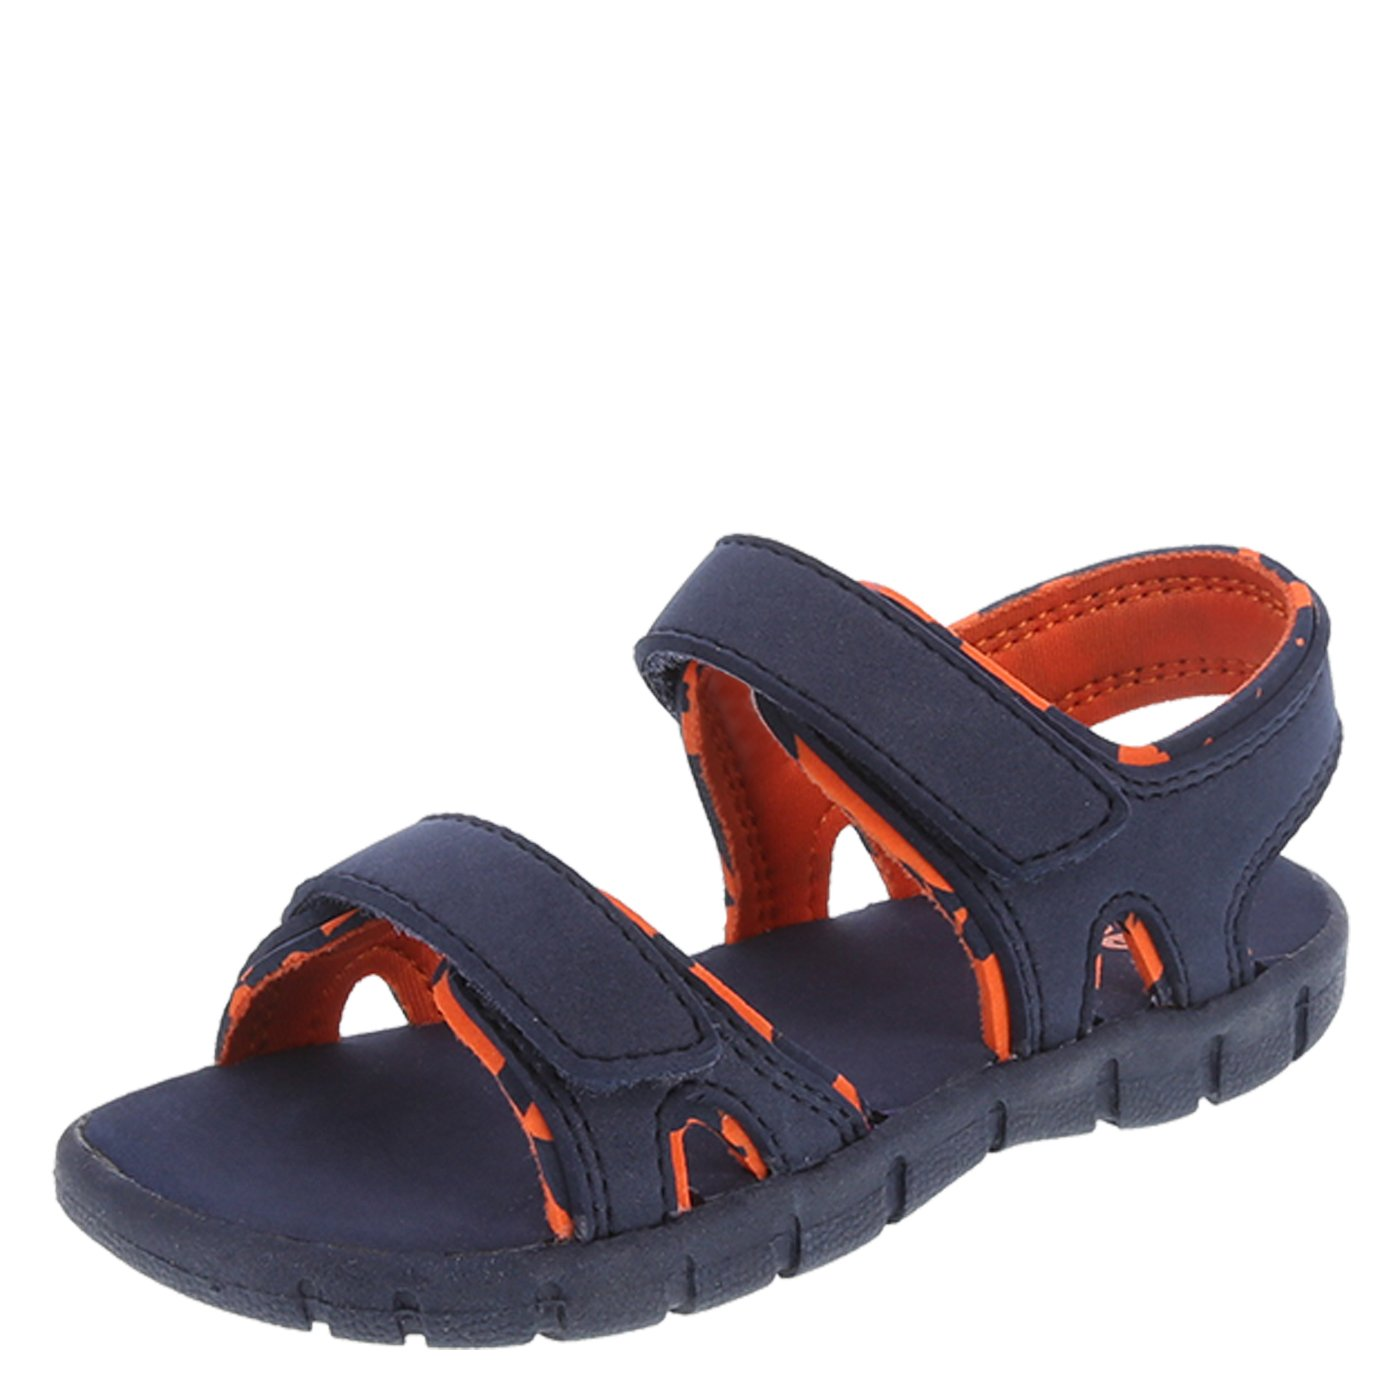 Zoe and Zac Boy's Navy Orange Boys' Toddler Sport Sandal Toddler Size 5 Regular